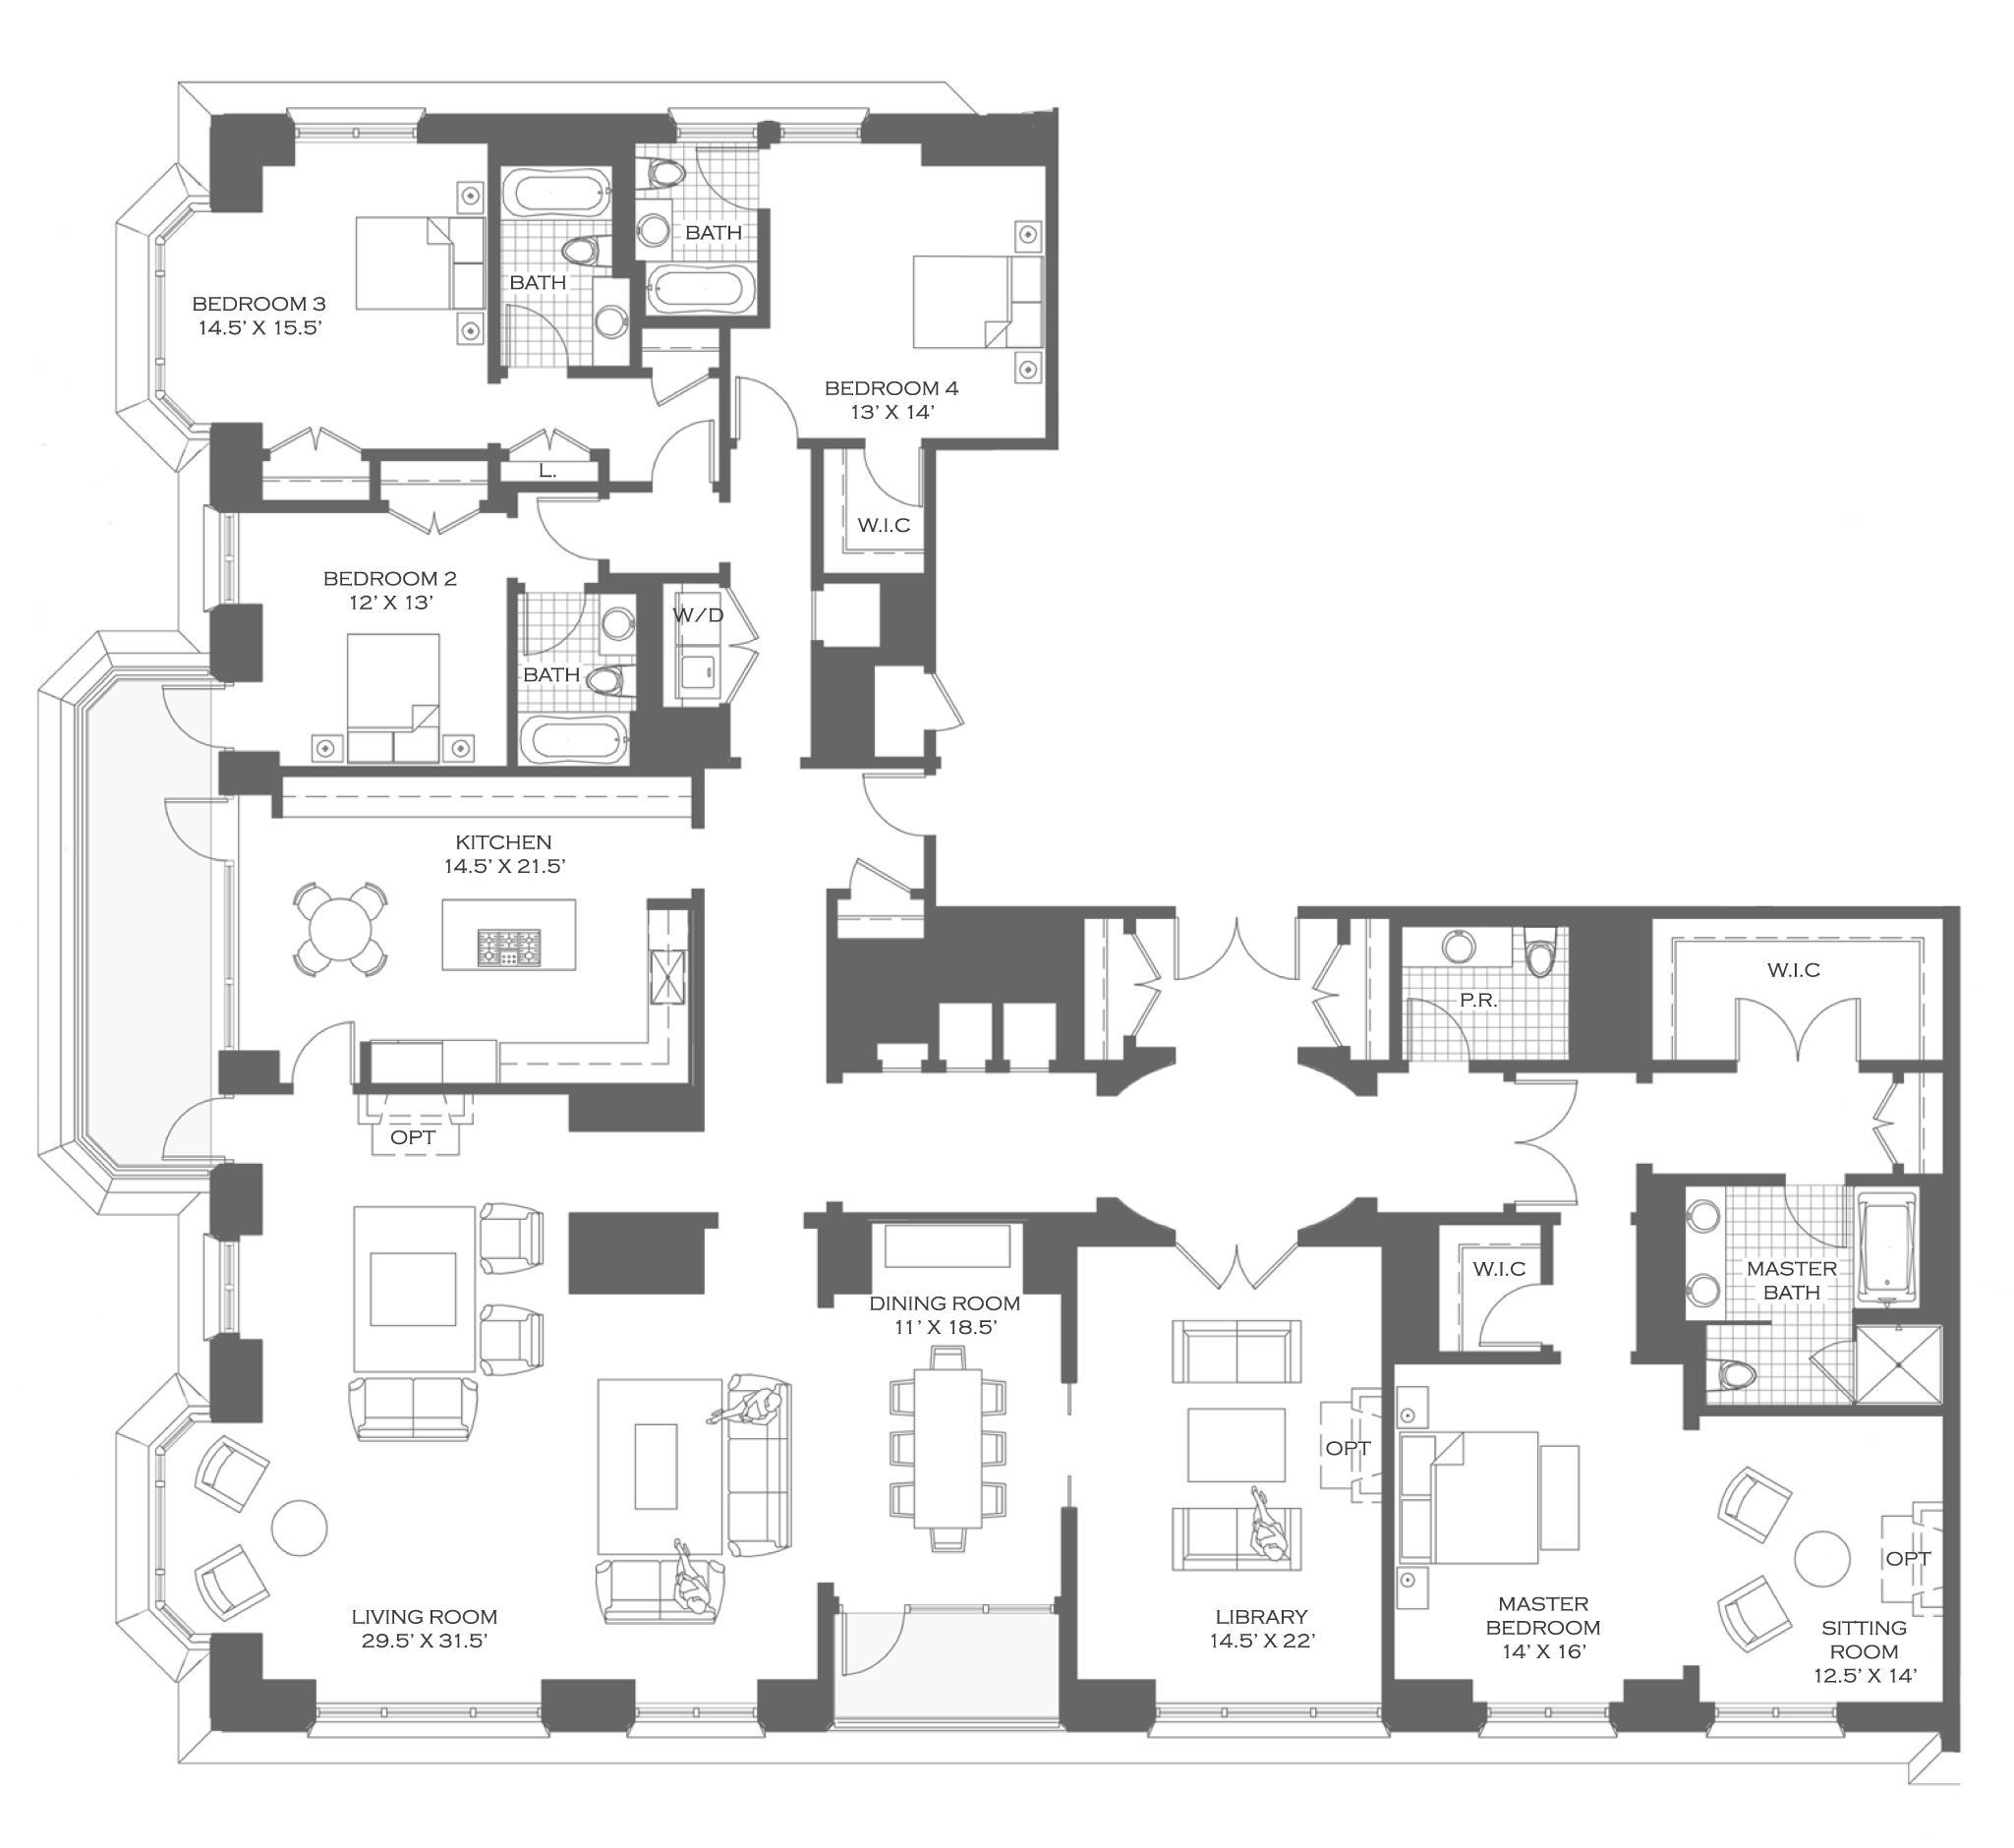 Keptalalat A Kovetkezore Parisian Apartment Plan Un Apartment Floor Plans Apartment Floor Plan Apartment Plans